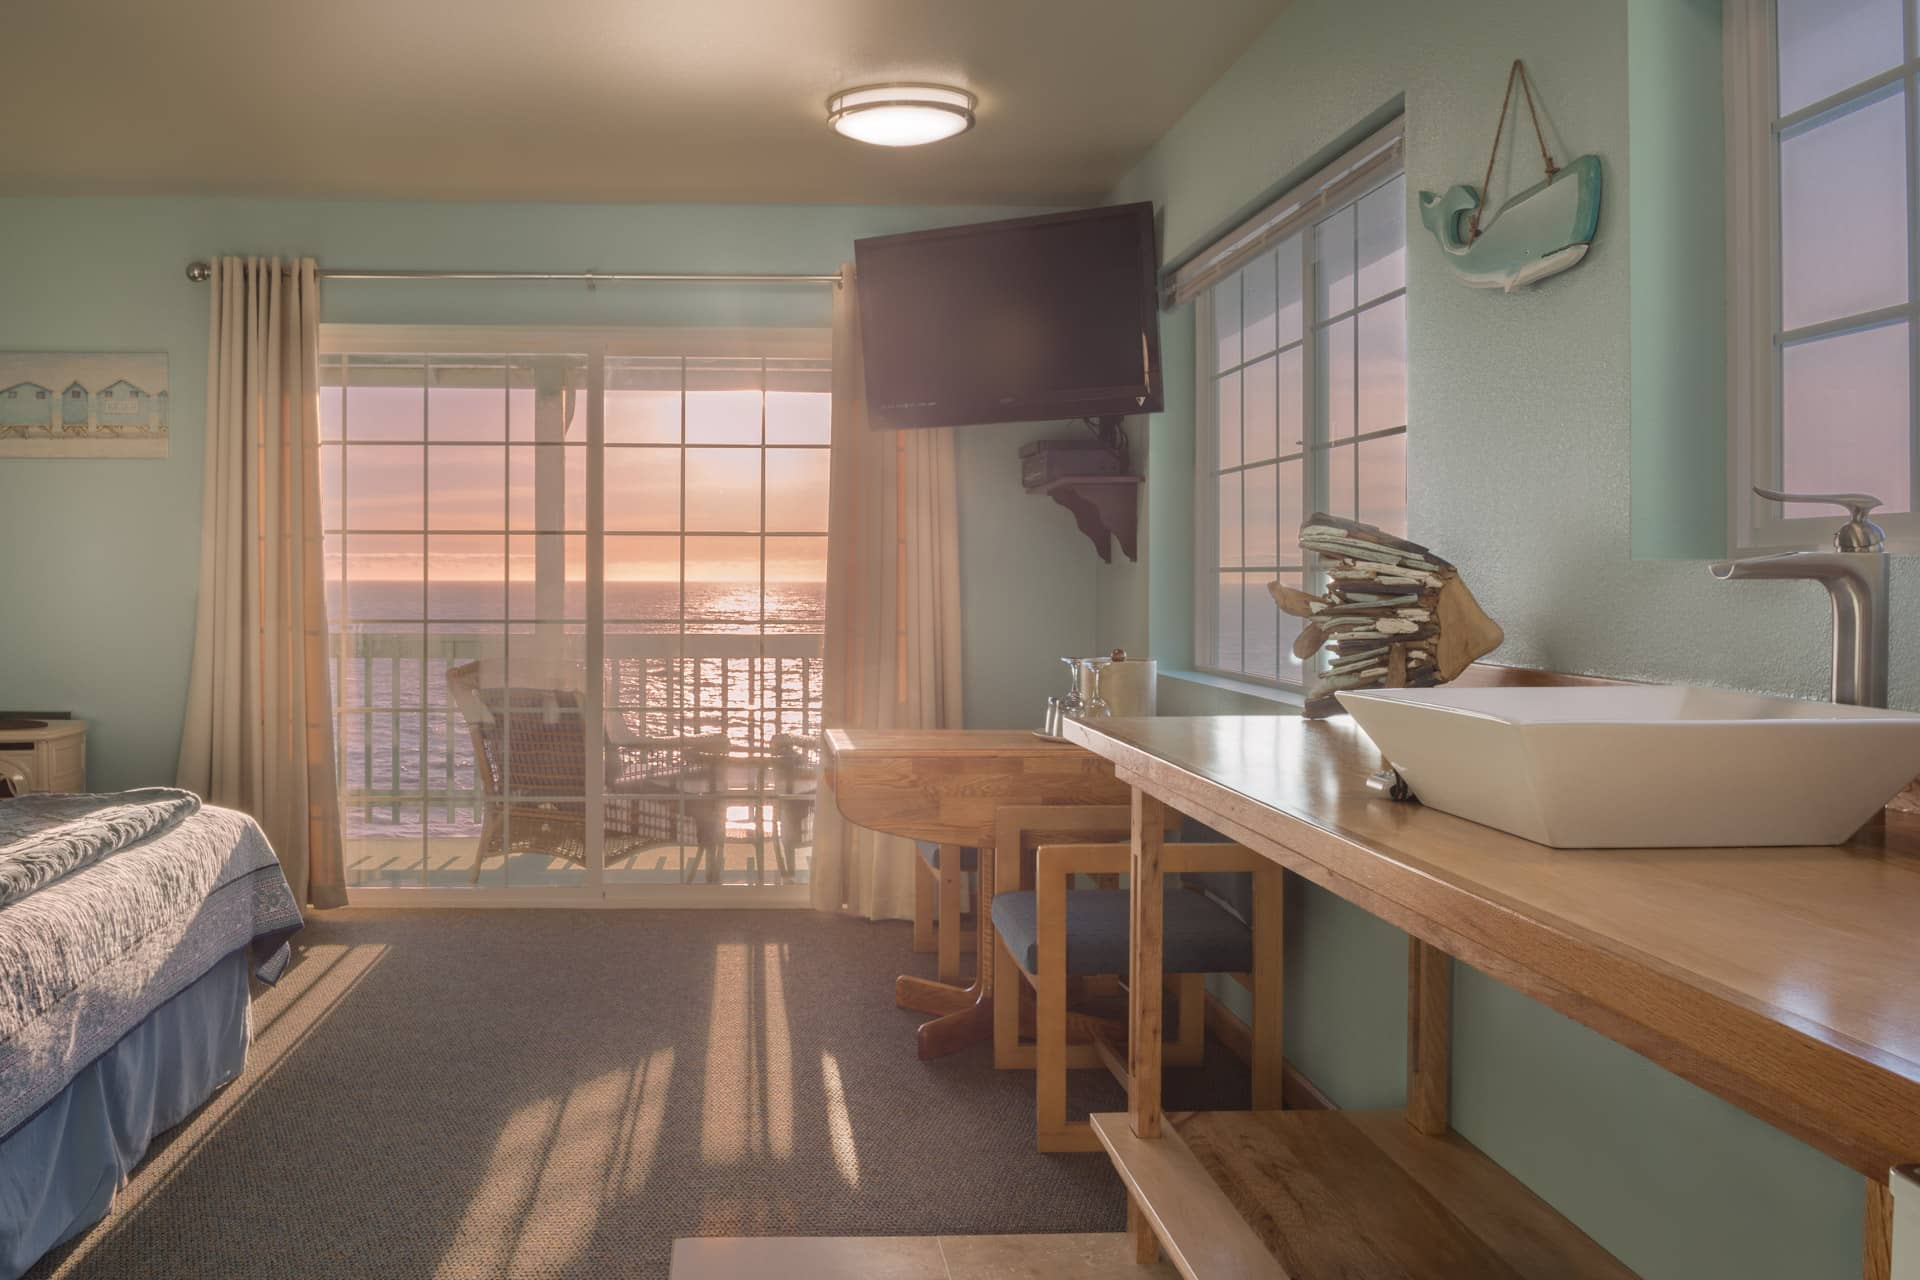 Sunset view at the oceanfront Inn of the Lost Coast Shelter Cove, from within the Deluxe Corner Guestroom hotel room with kitchenette, sink, and private balcony overlooking the Shelter Cove coastal bluffs.